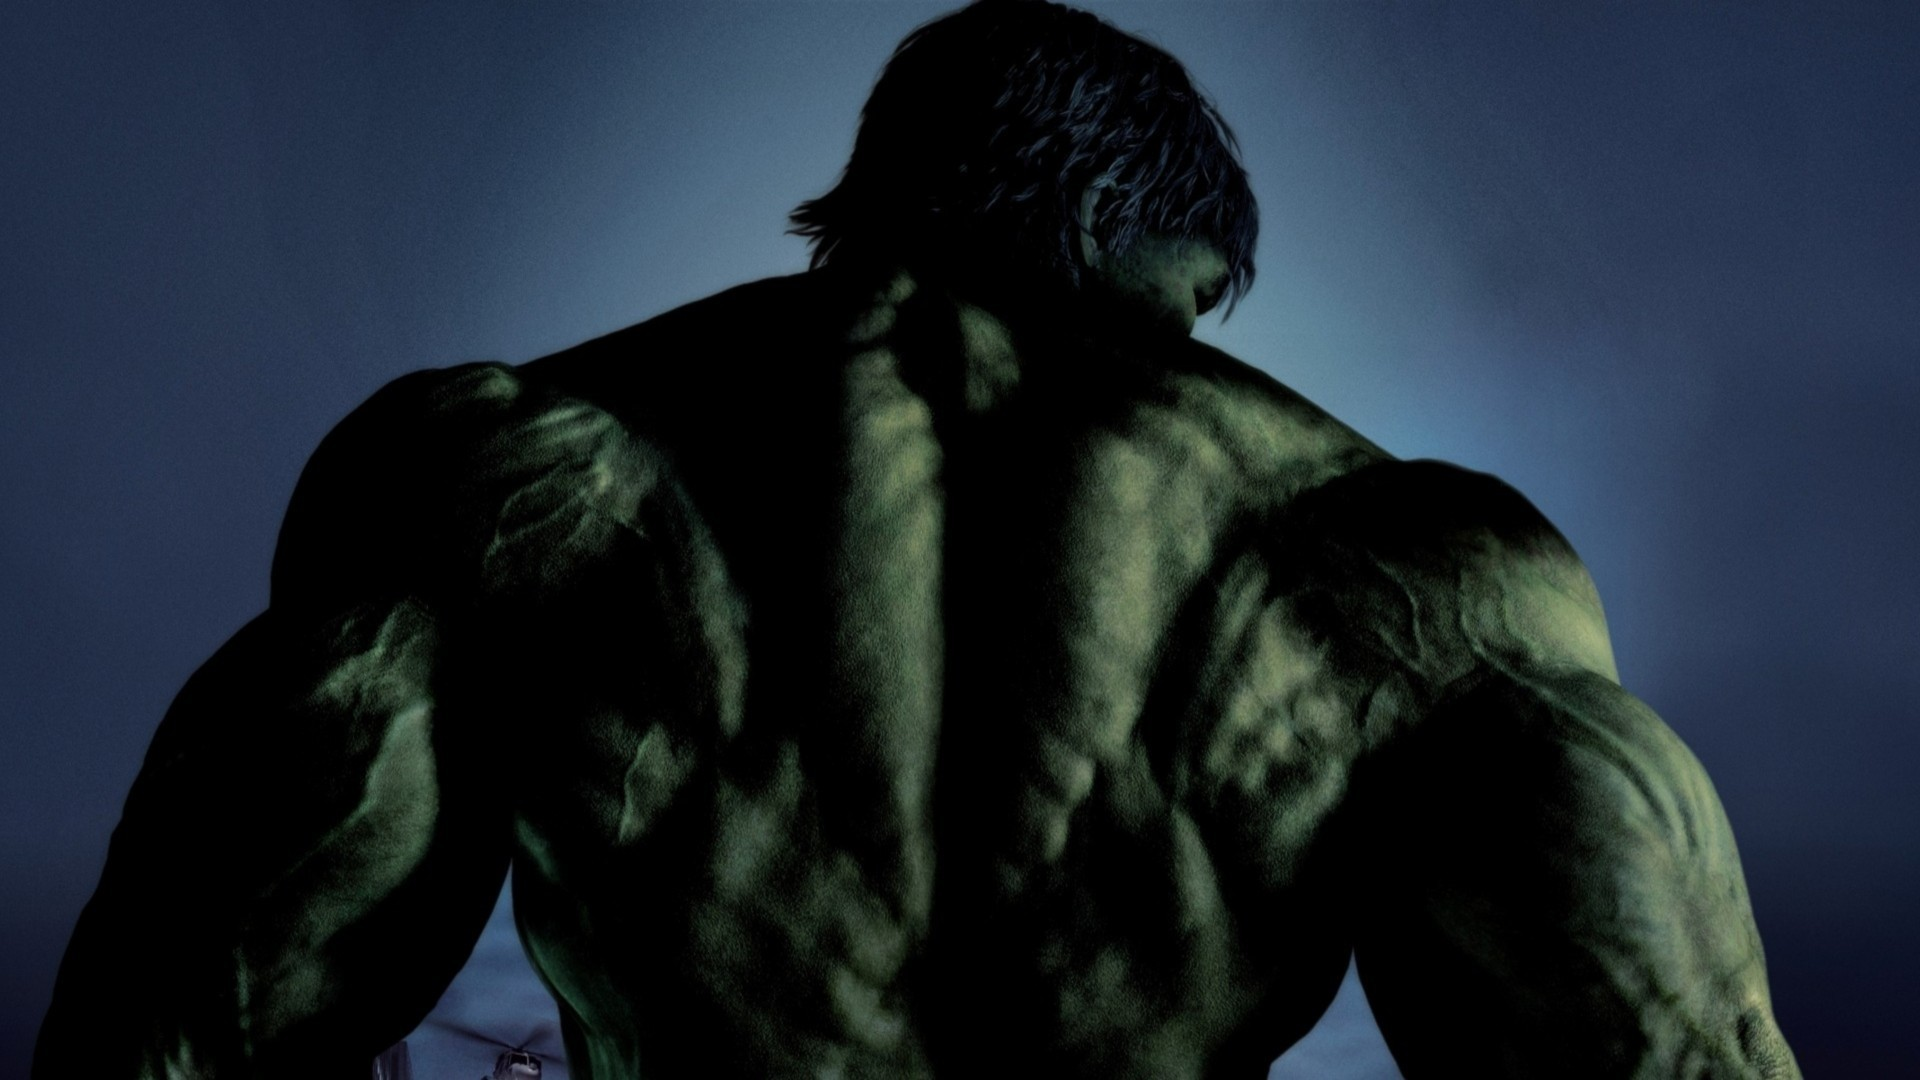 Hulk Smash Avengers HD Wallpaper Background Images 1920x1080